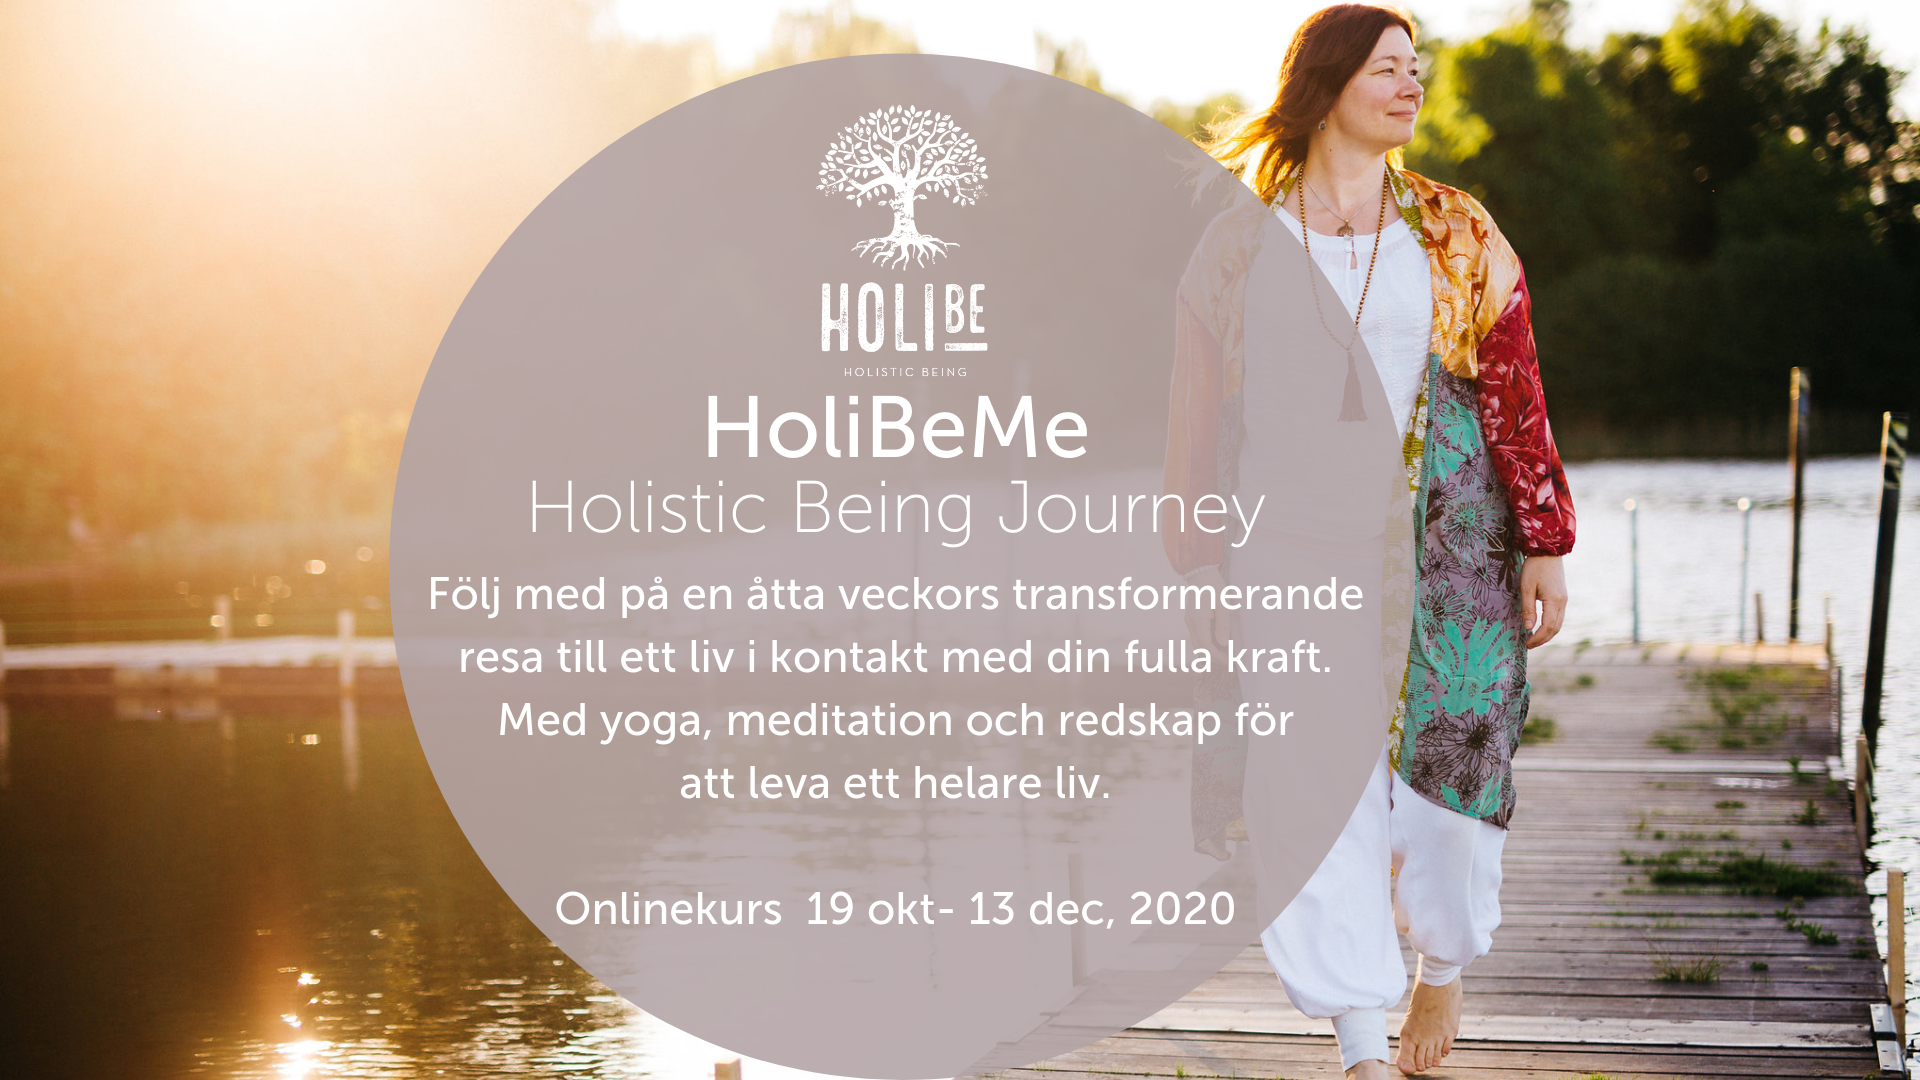 HoliBeMe Holistic Being Journey